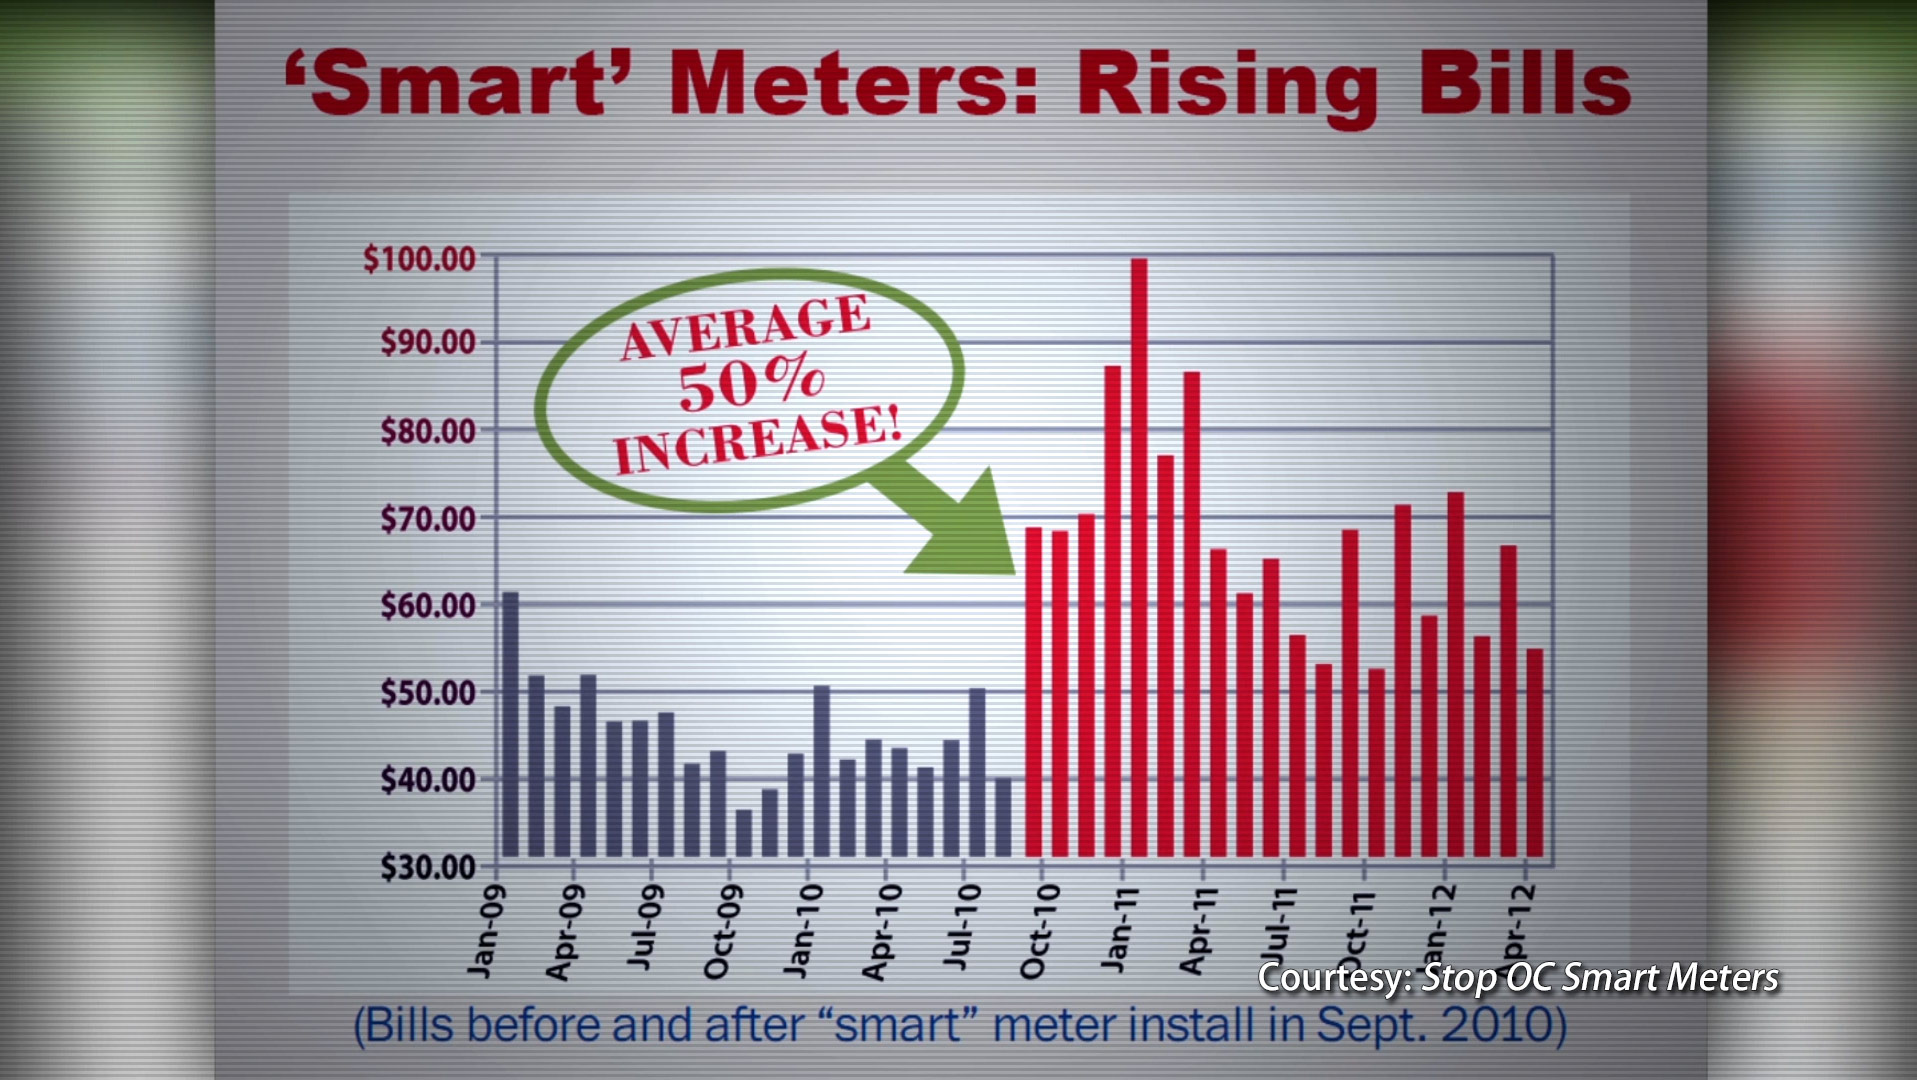 Smart meters equal rising utility bills.